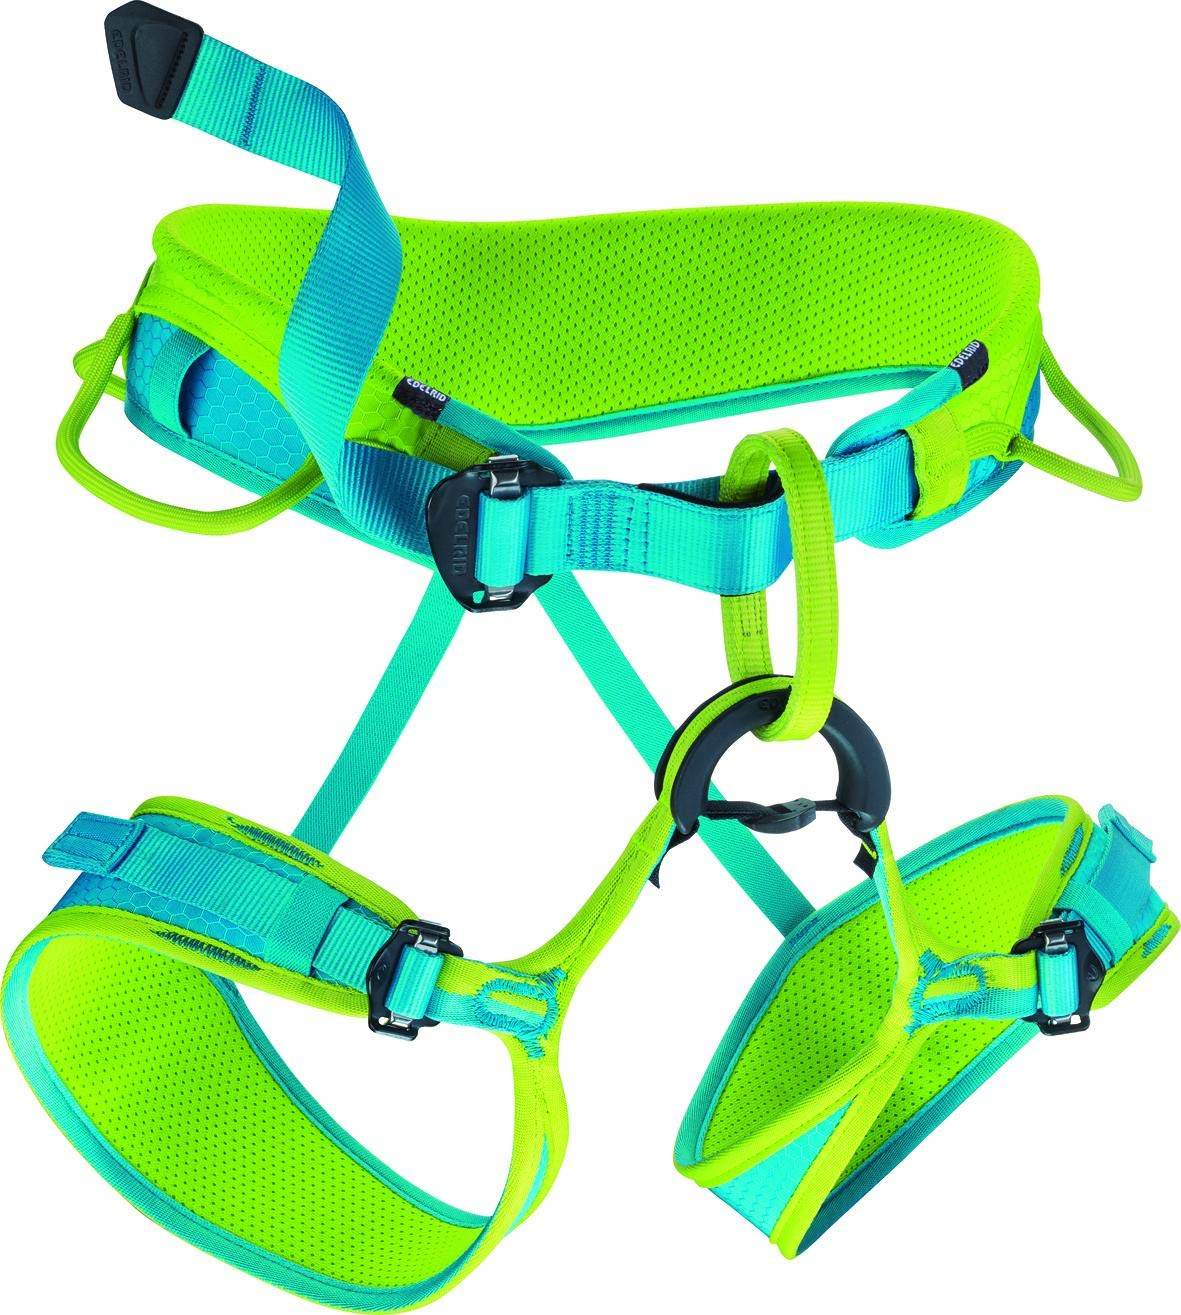 EDELRID Jayne Climbing Harness - Oasis/Icemint X-Small by EDELRID